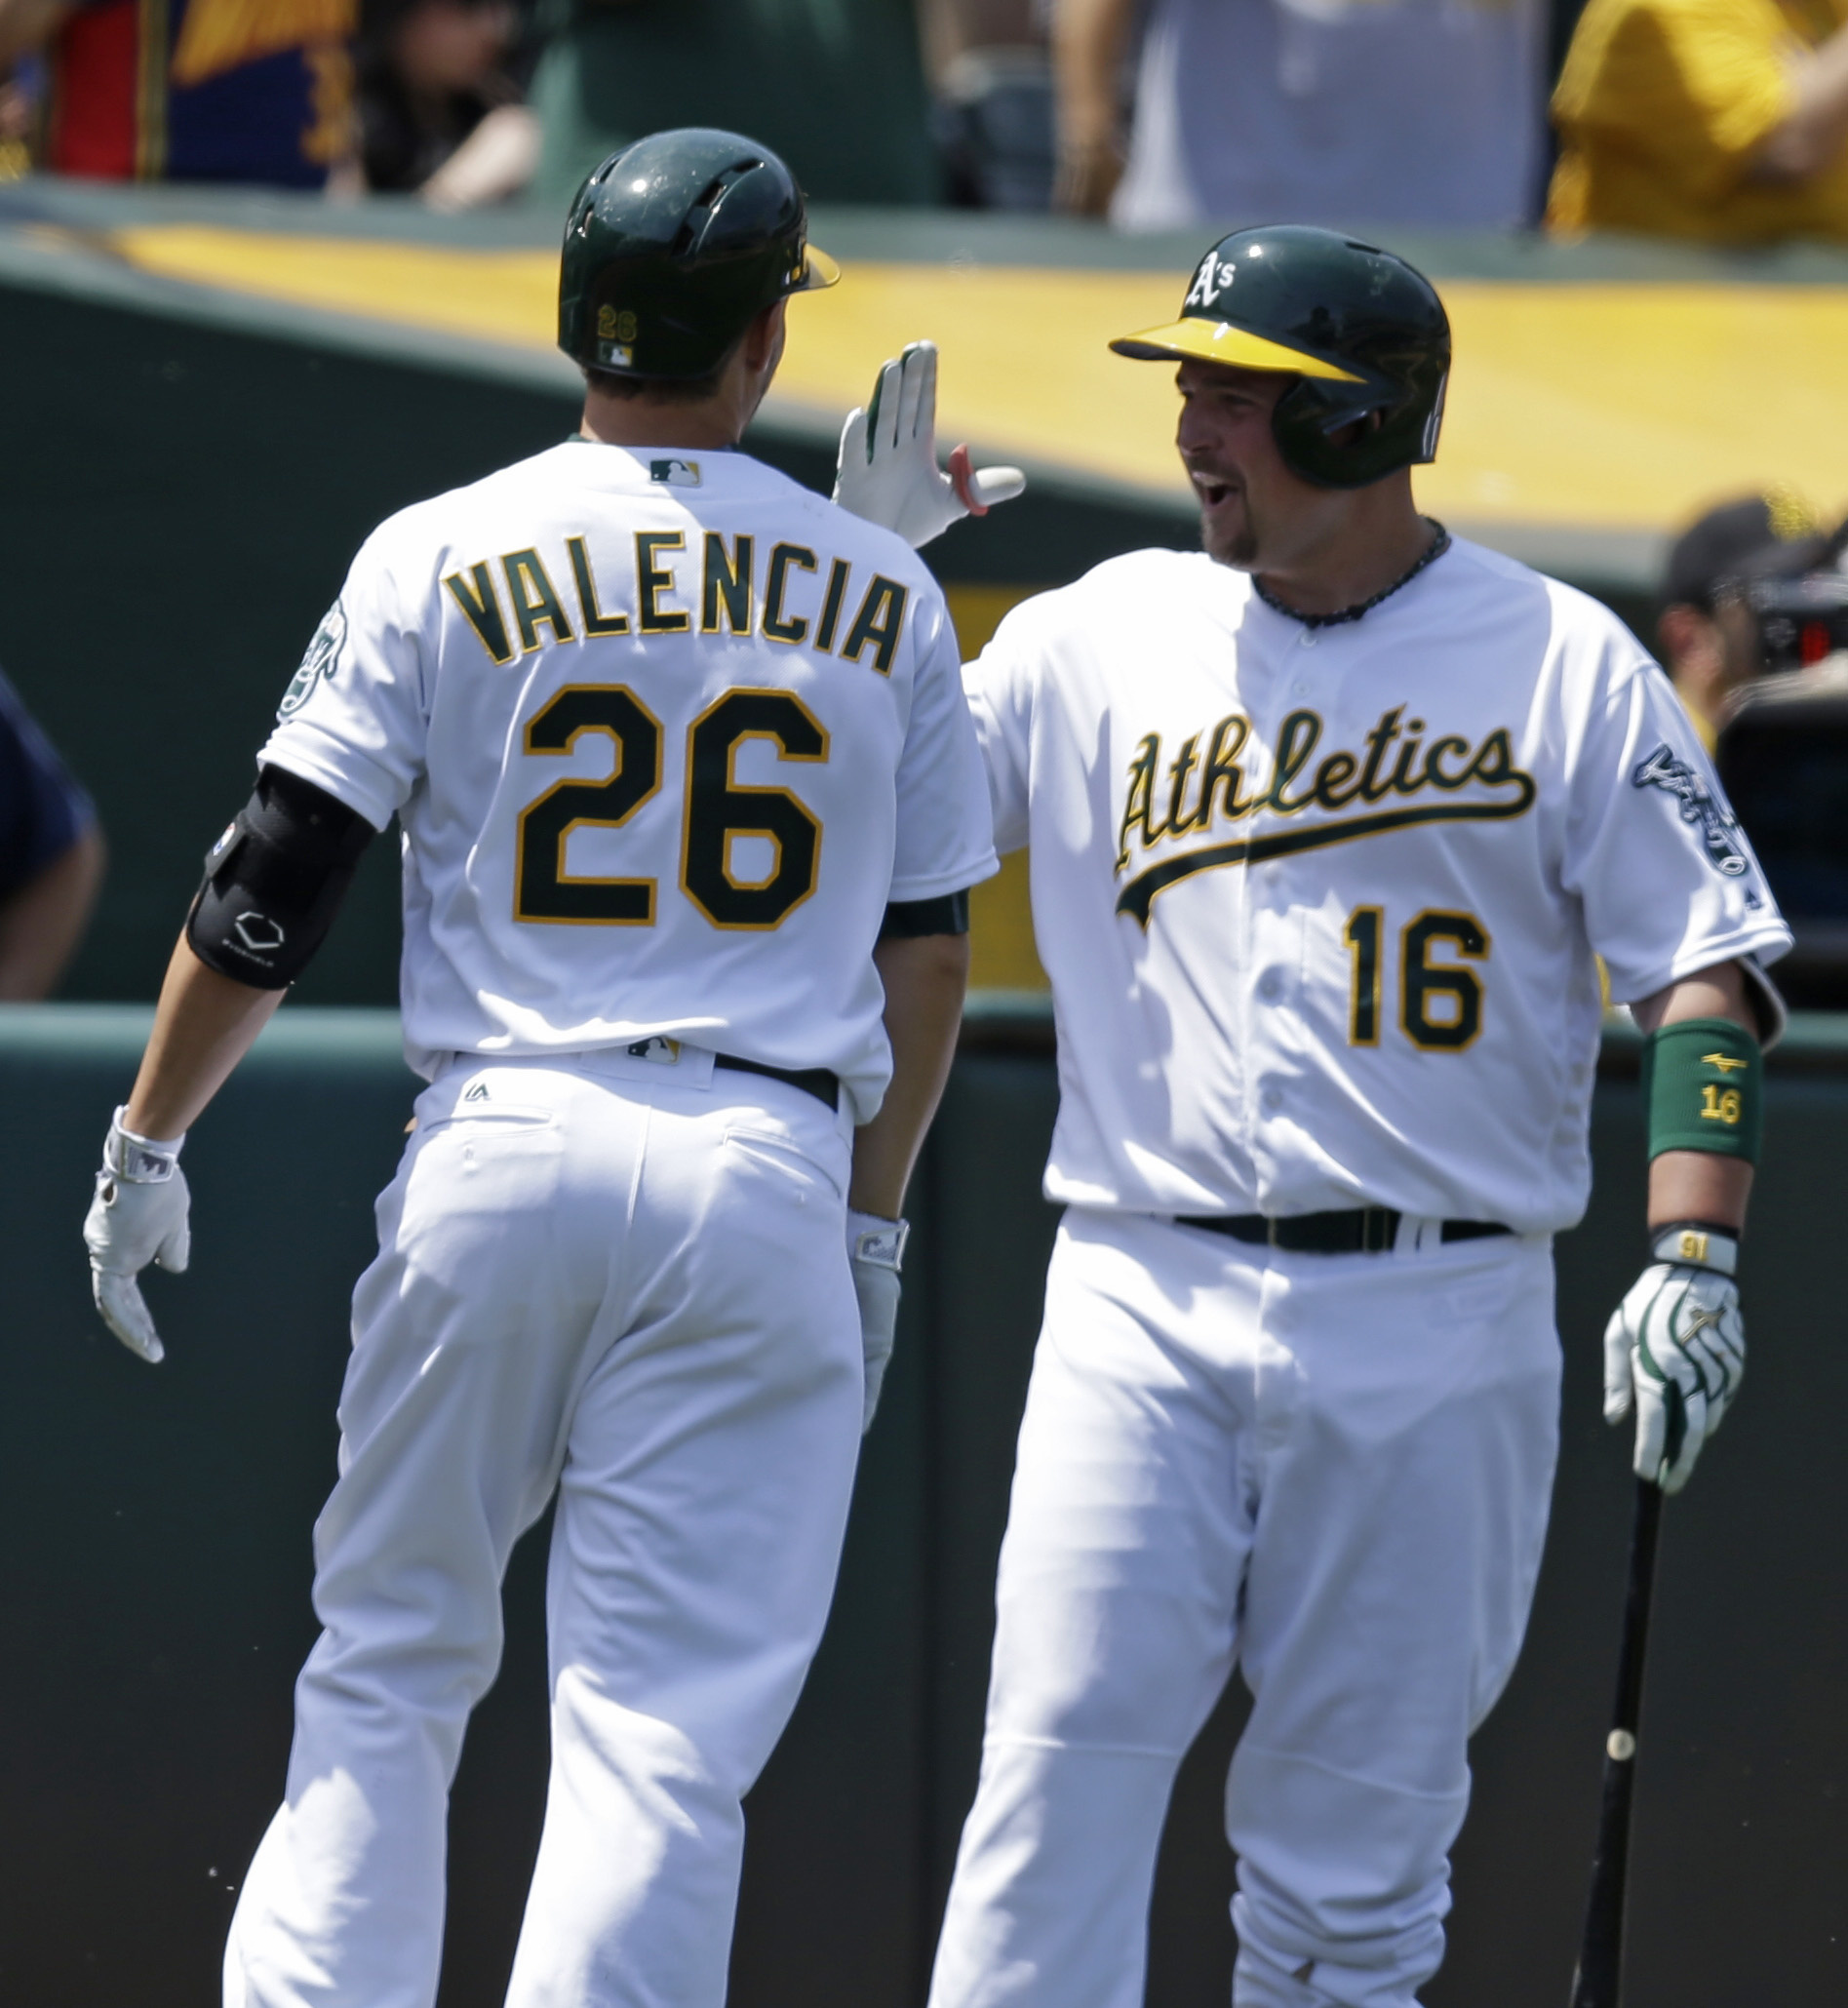 FILE - In this May 28, 2016 file photo Oakland Athletics' Danny Valencia (26) is congratulated by Billy Butler (16) after hitting a home run off Detroit Tigers' Matt Boyd in the fourth inning of a baseball game in Oakland, Calif. Butler and Valencia both